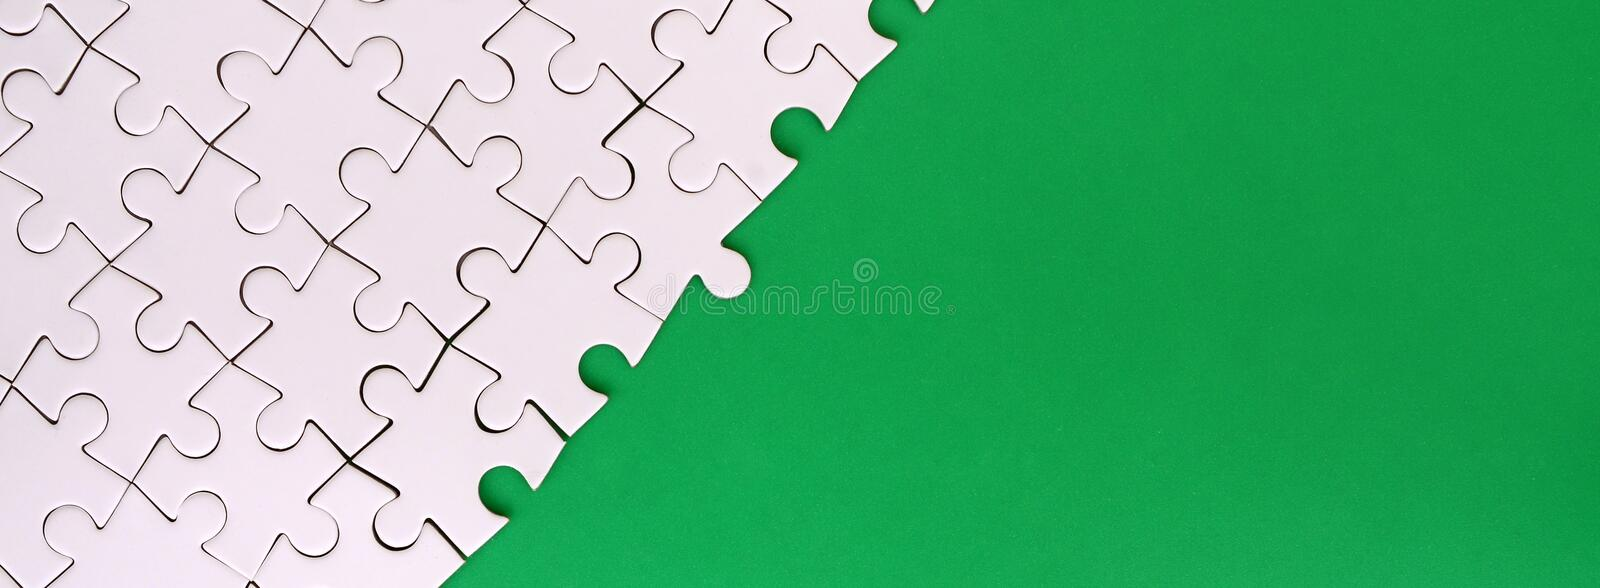 Fragment of a folded white jigsaw puzzle on the background of a green plastic surface. Texture photo with copy space for text.  royalty free stock image